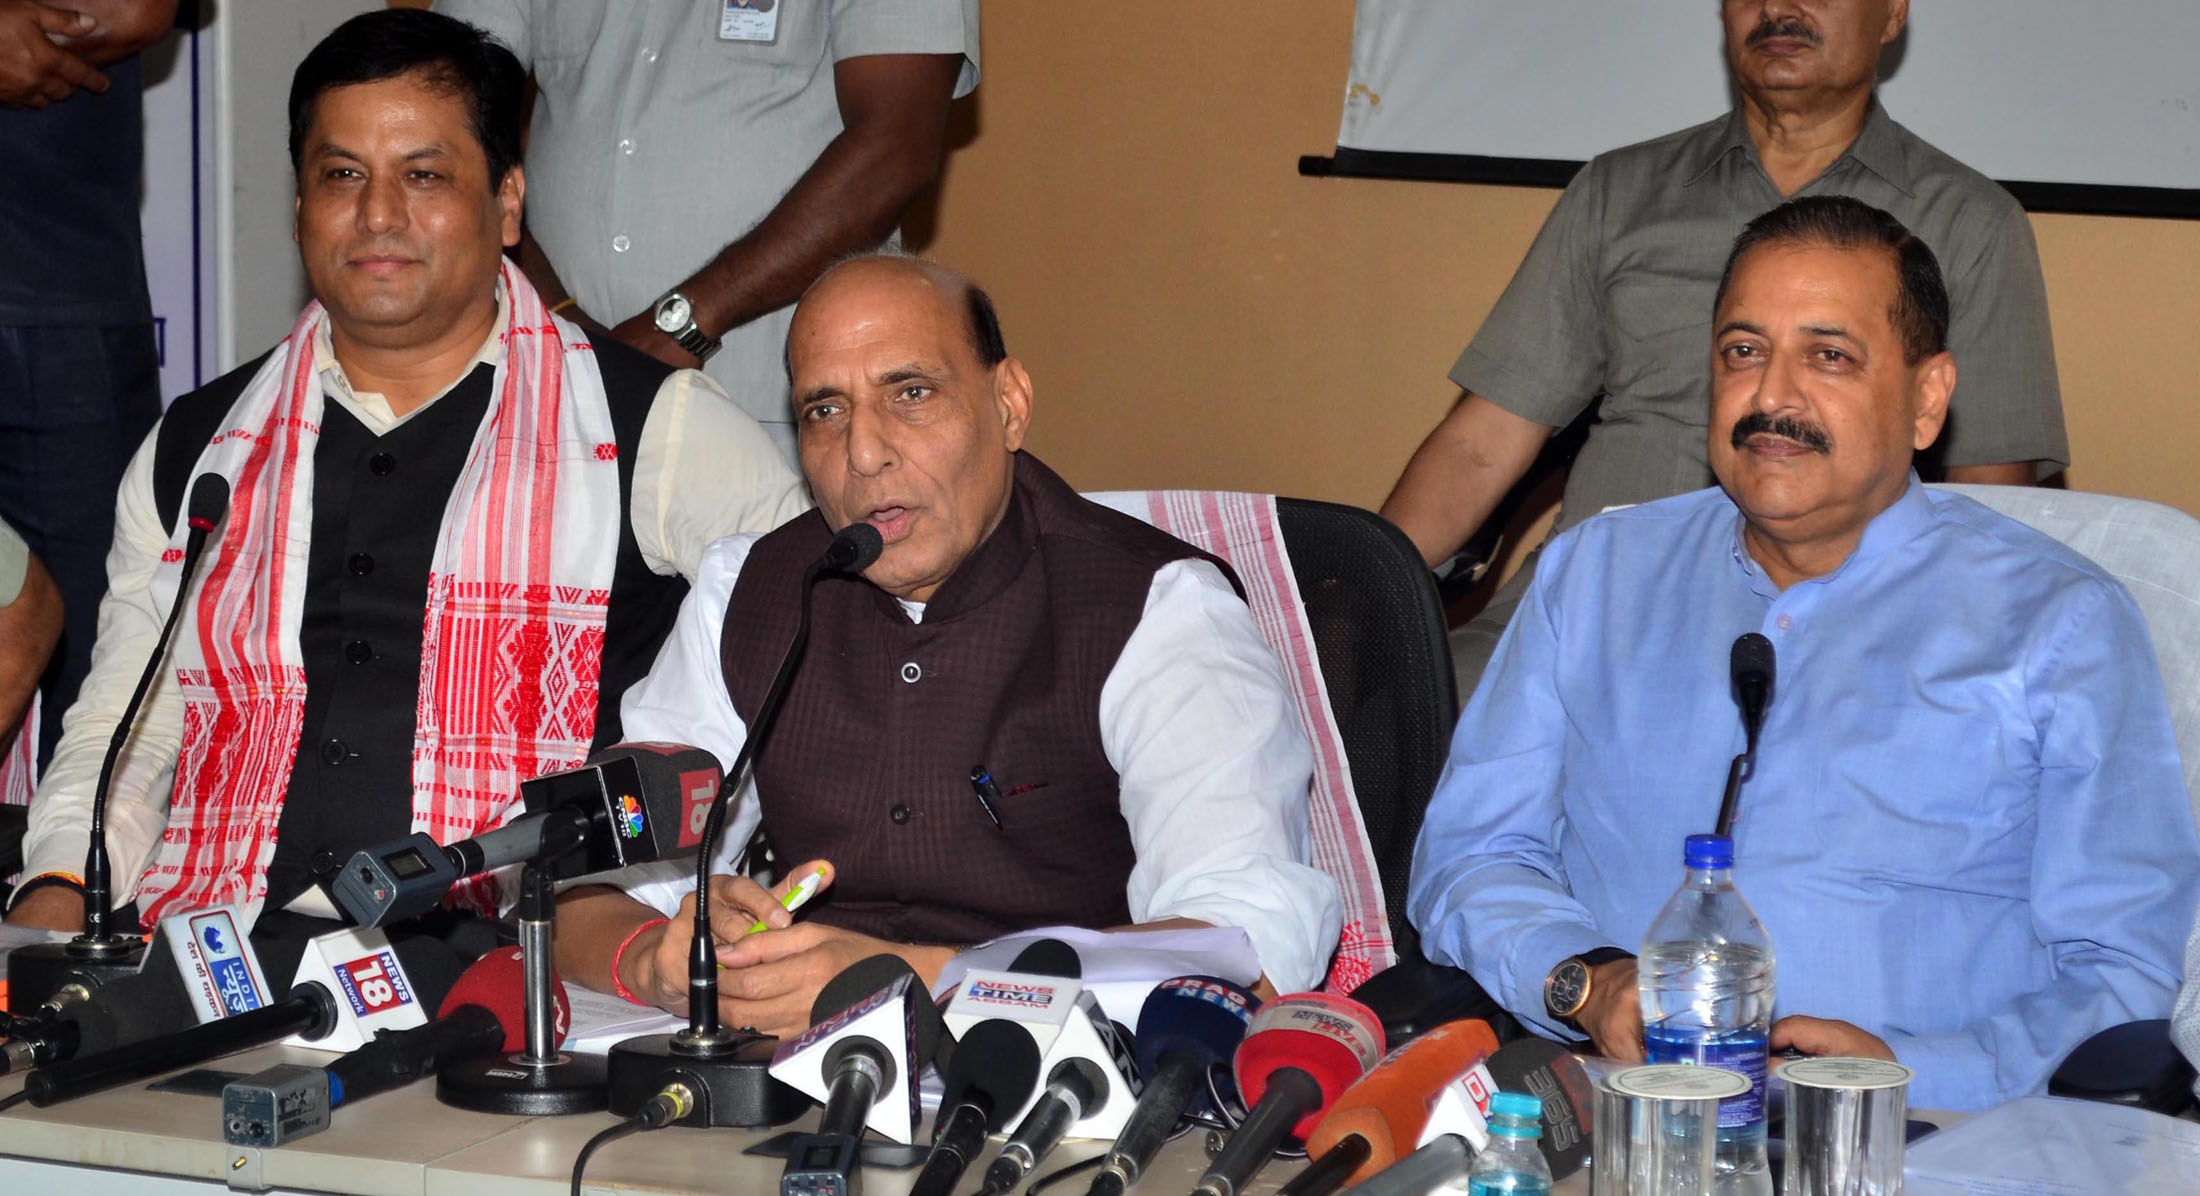 The Union Home Minister, Shri Rajnath Singh addressing a press conference, at Guwahati on July 30, 2016. The Chief Minister of Assam, Shri Sarbananda Sonowal and the Minister of State for Development of North Eastern Region (I/C), Prime Minister's Office, Personnel, Public Grievances & Pensions, Atomic Energy and Space, Dr. Jitendra Singh are also seen.